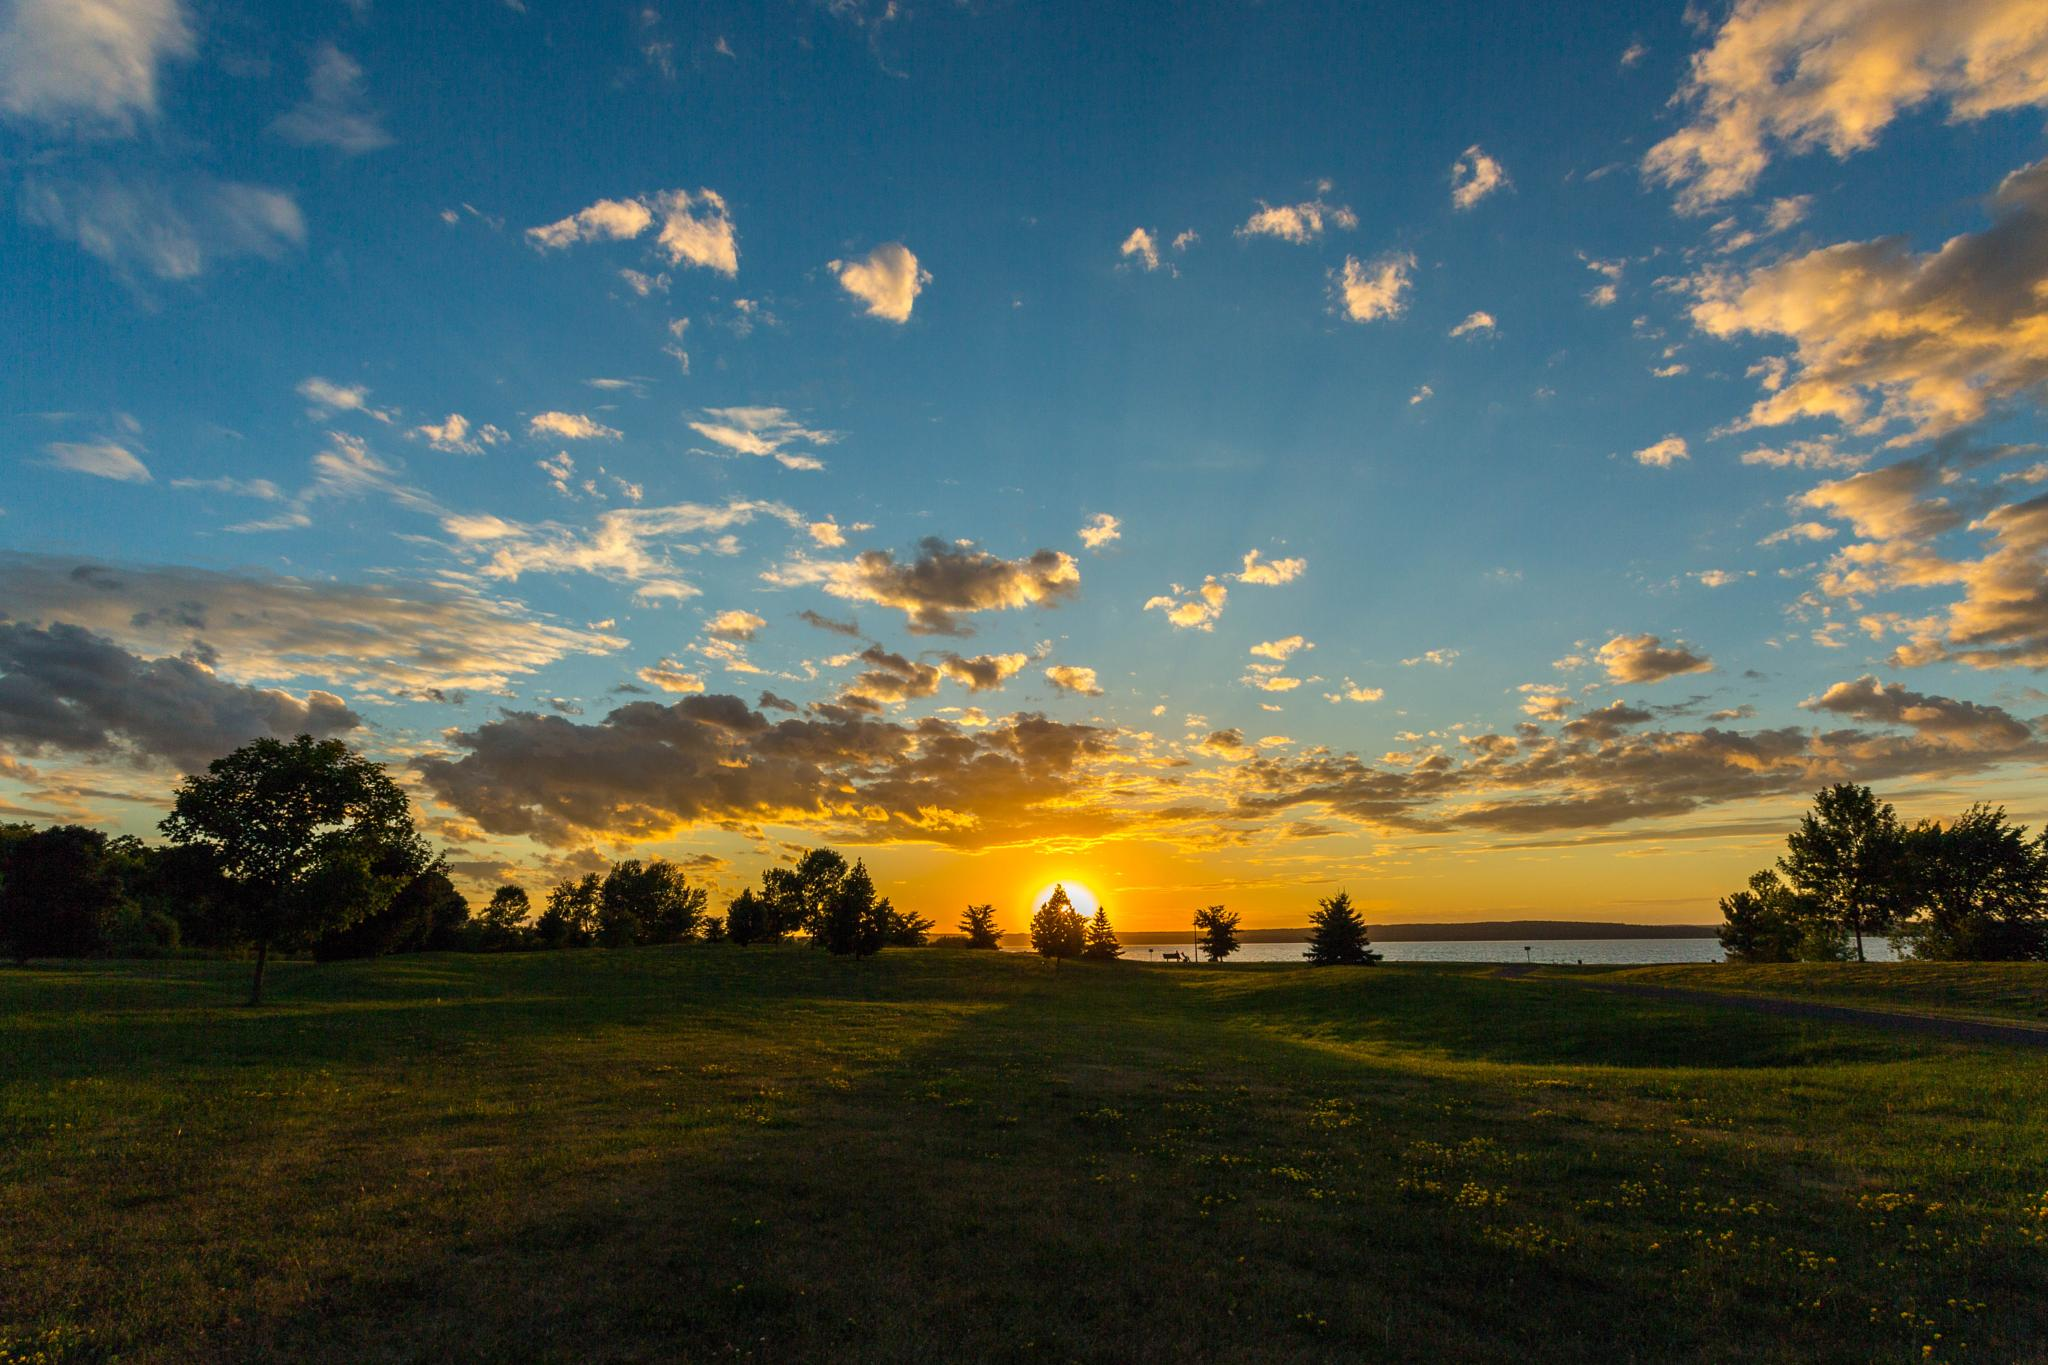 Sunset In Thr Park by Bertheaume